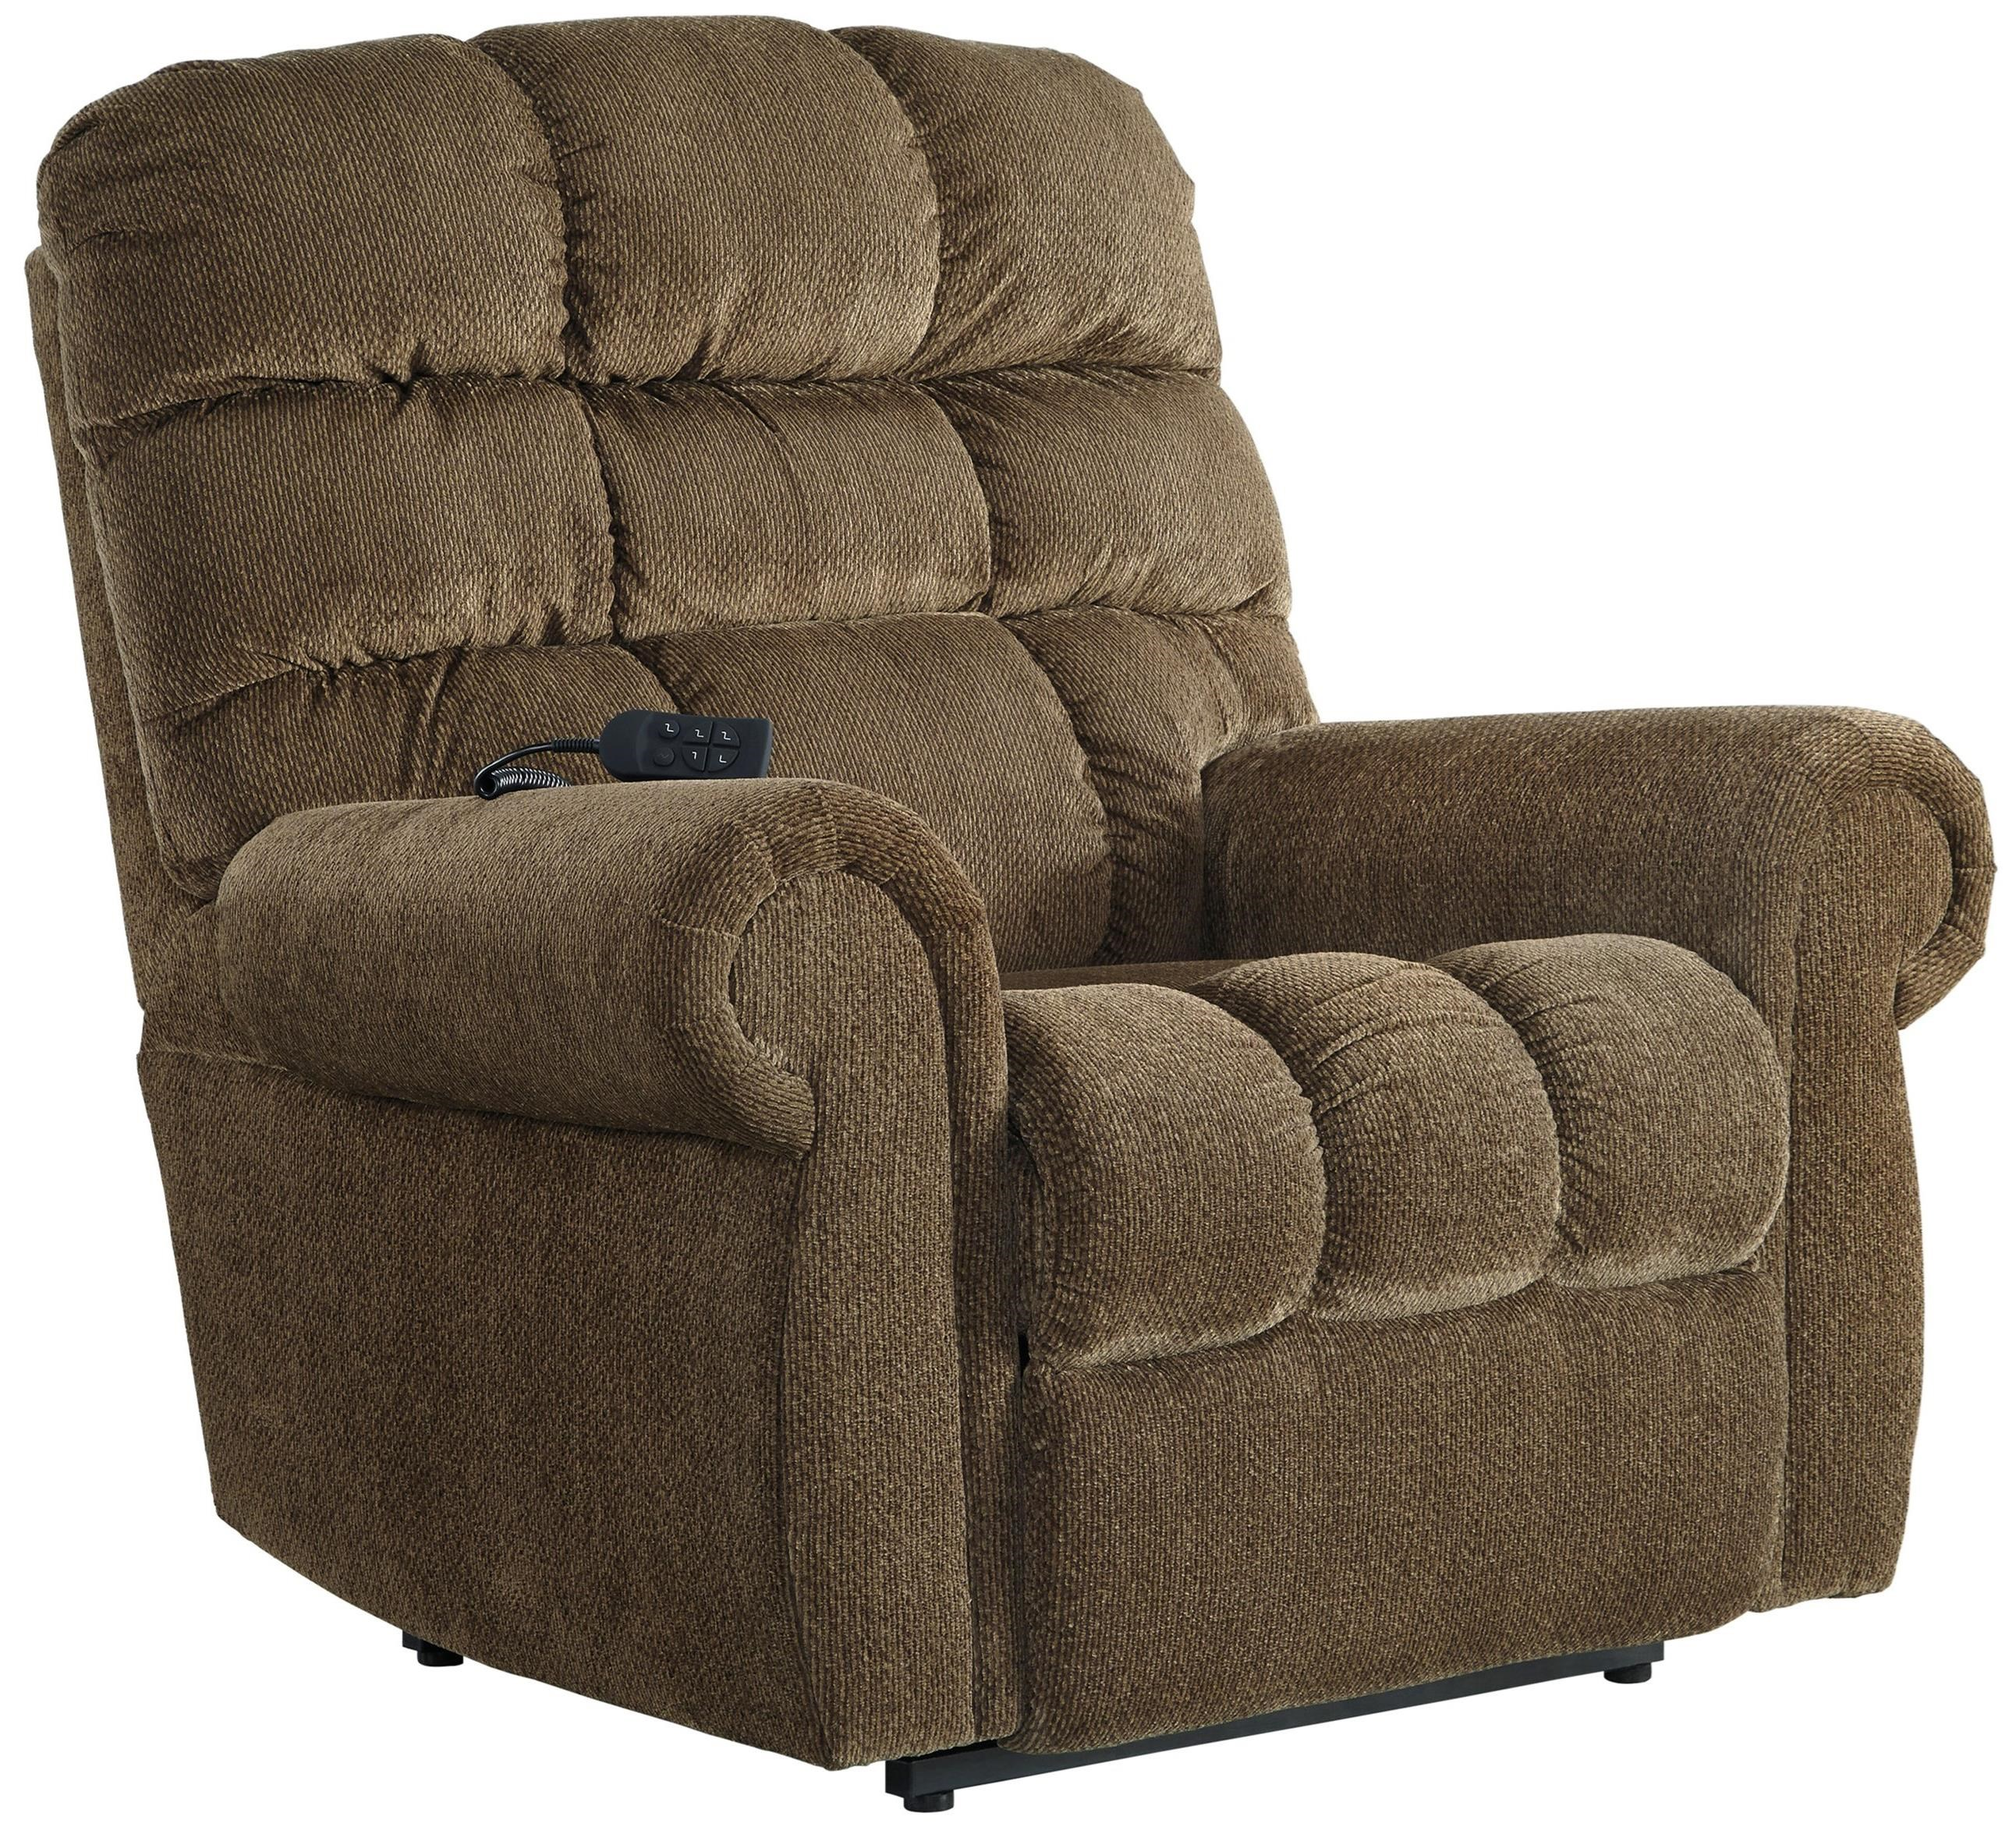 Ernestine Power Lift Recliner by Signature Design by Ashley at Beck's Furniture